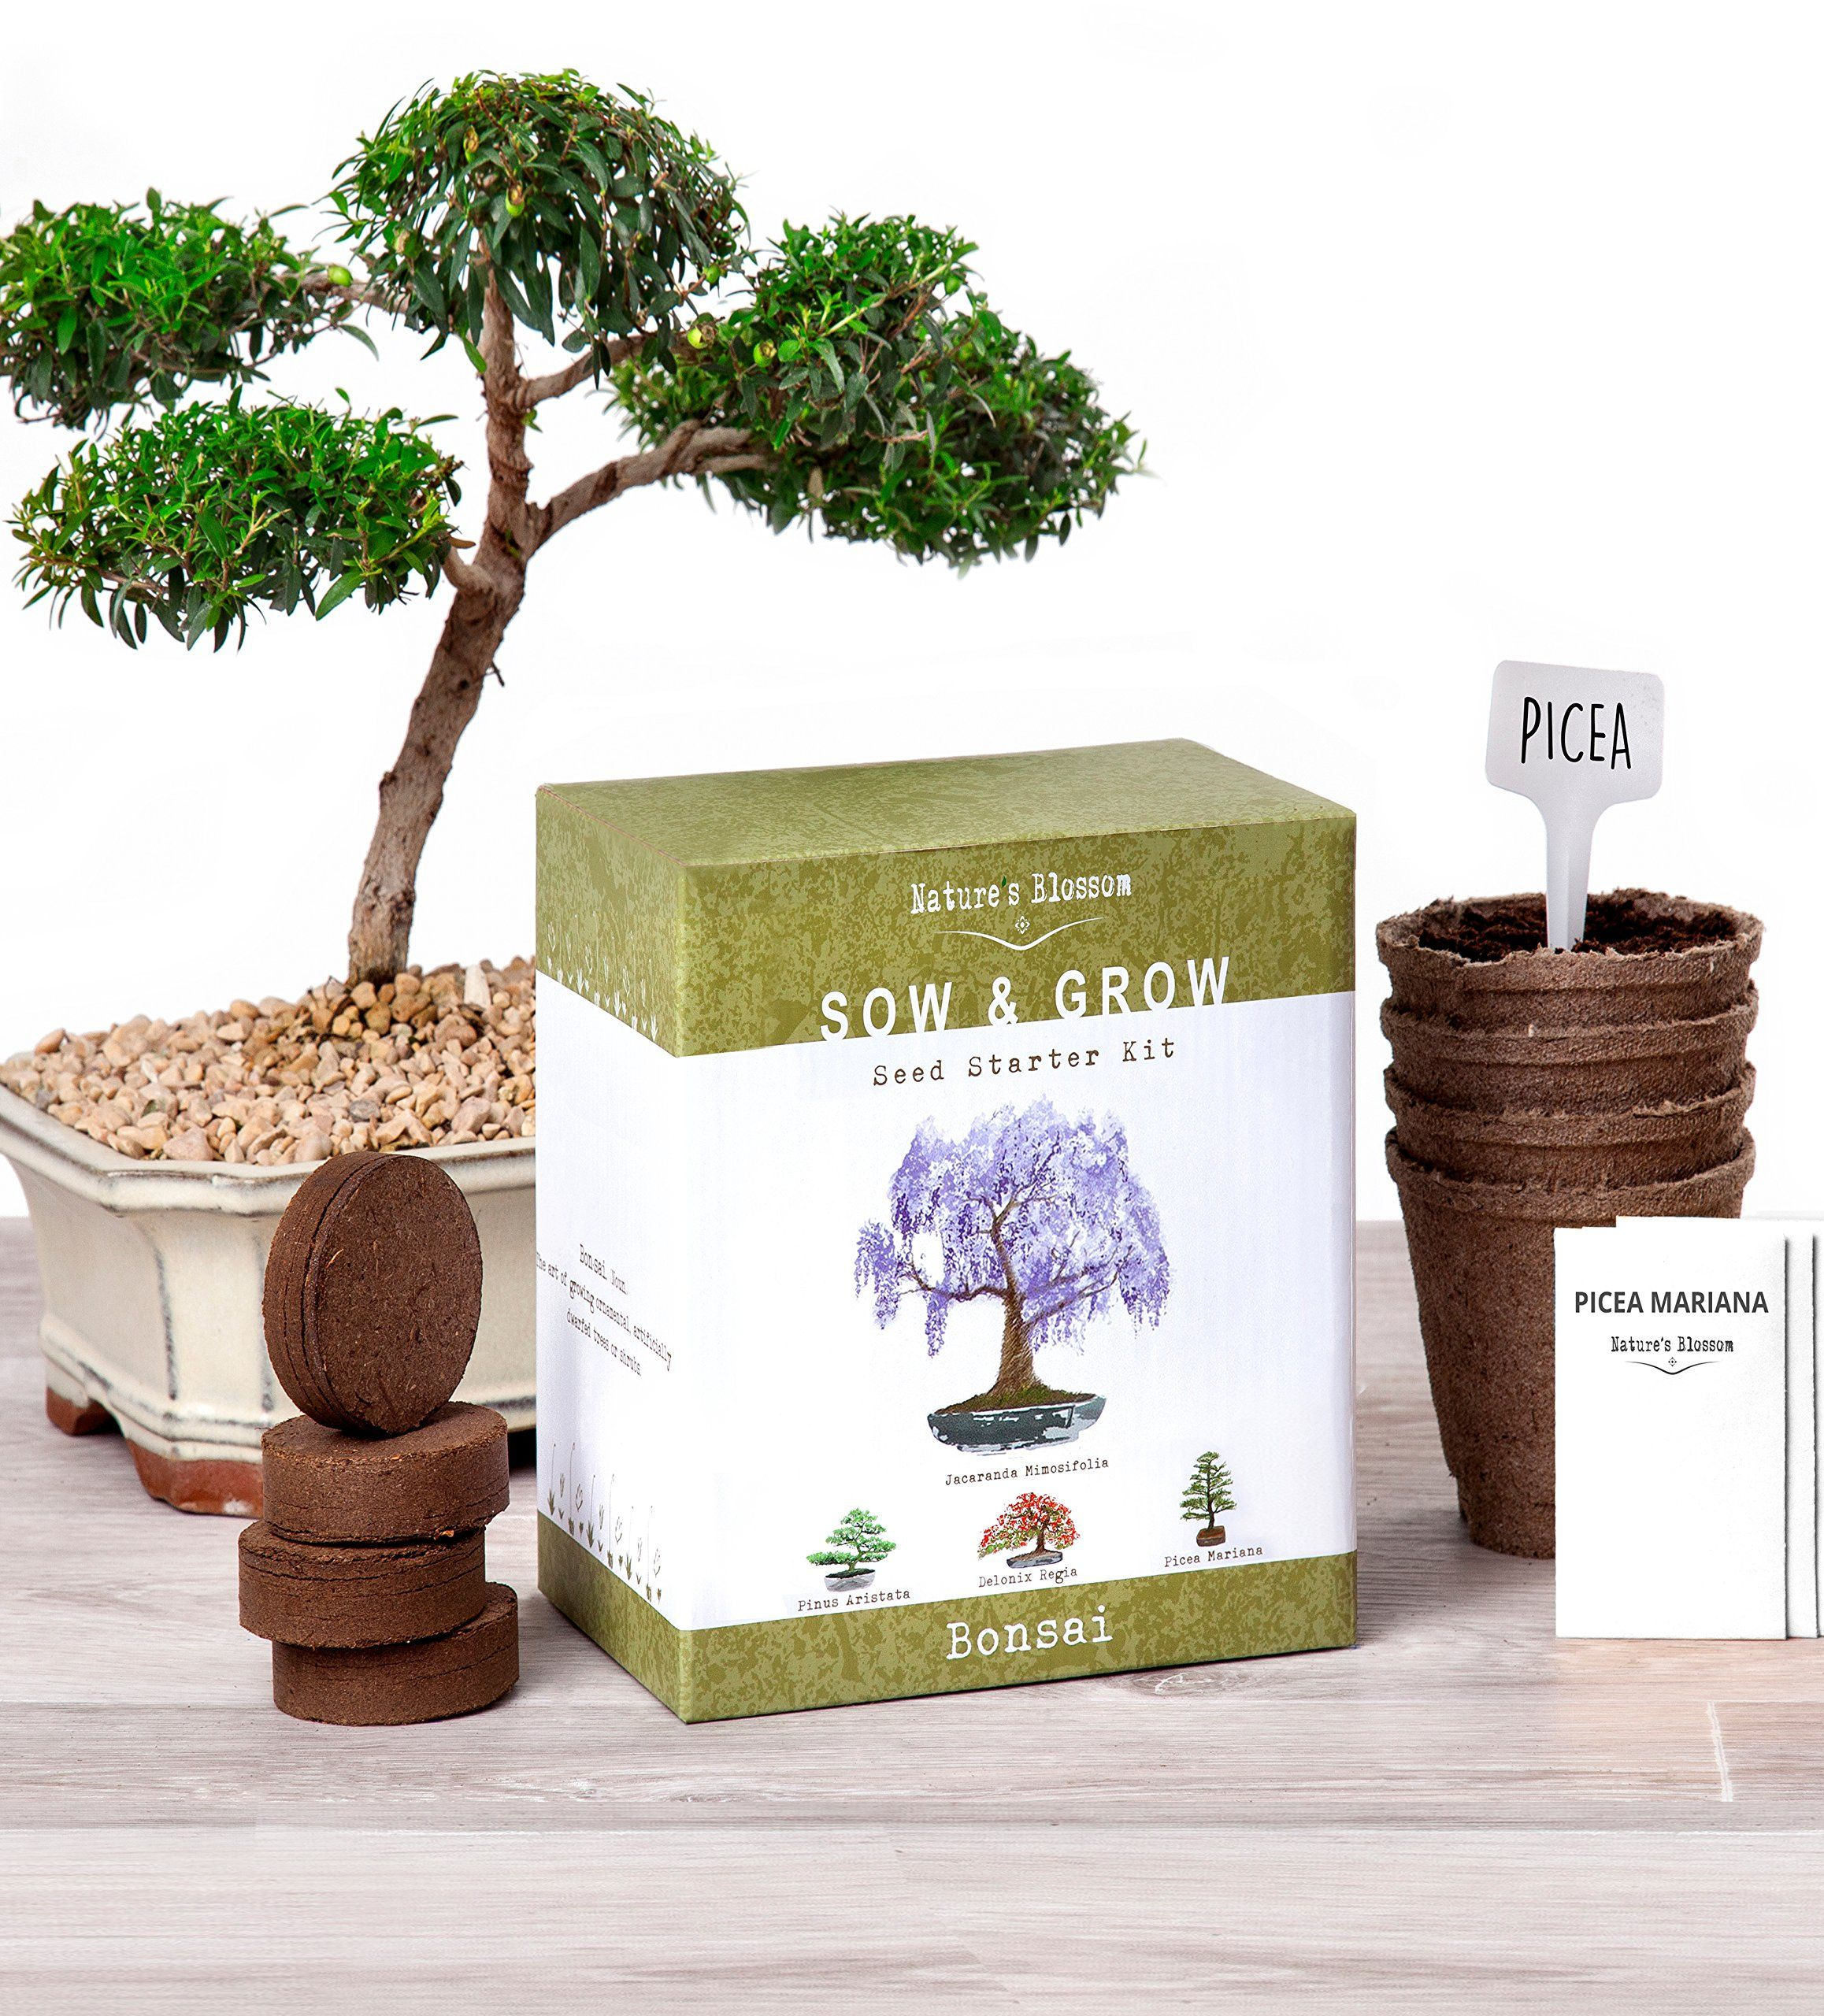 Amazon Com Nature S Blossom Bonsai Tree Seed Starter Kit Grow 4 Bonsais From Seeds Complete Bonzai Garden Seed Starter Kit Planting Pots Bonsai Tree Types